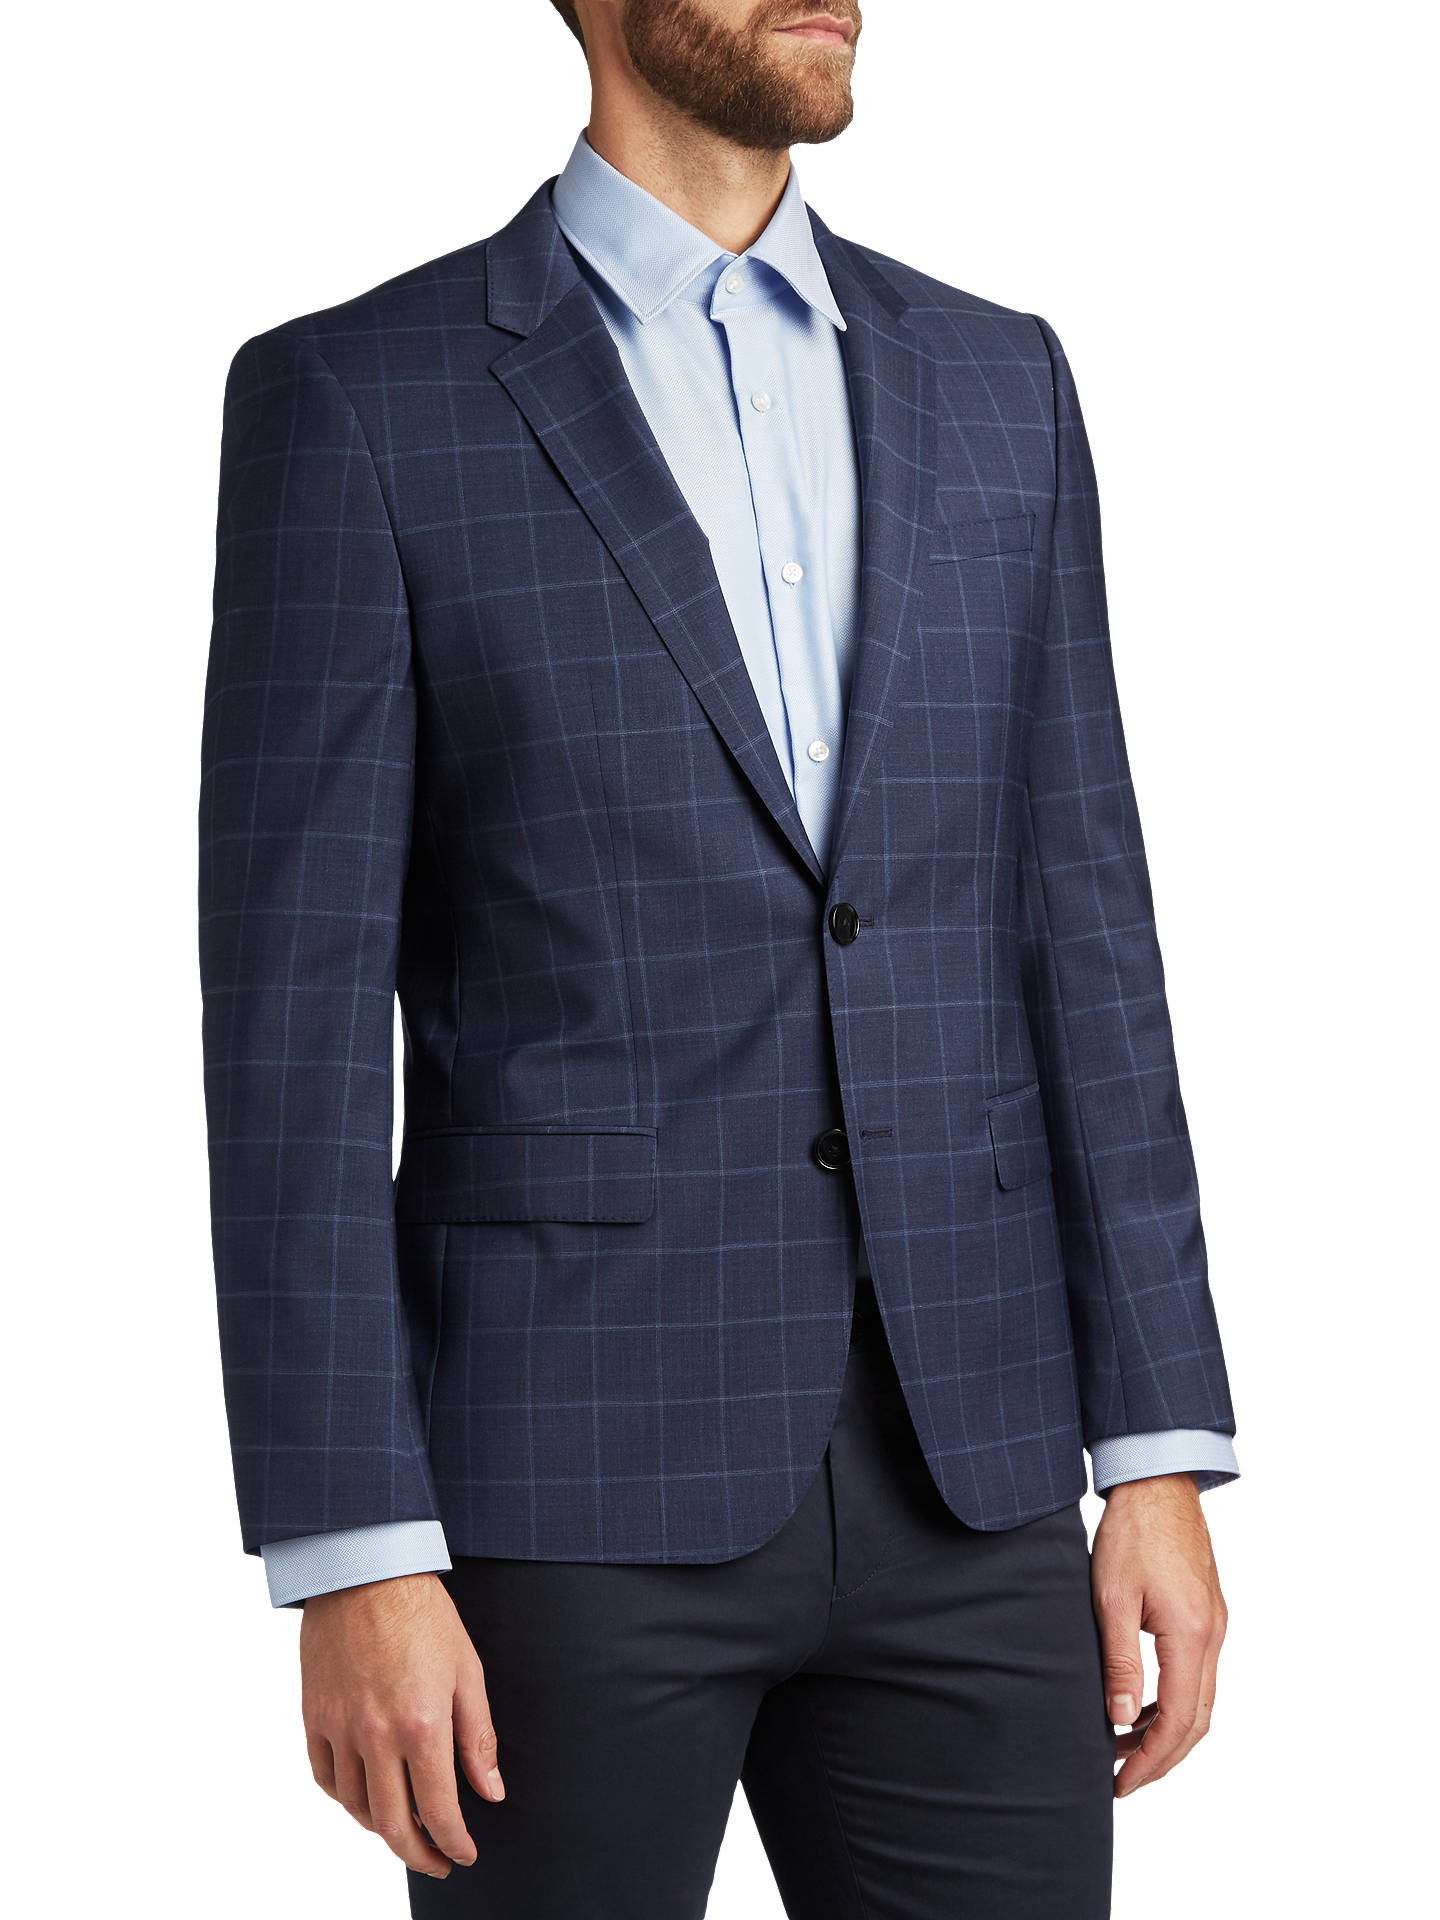 a0a81ff29f8 Buy HUGO by Hugo Boss Henry Windowpane Check Virgin Wool Slim Fit Suit  Jacket, Medium ...